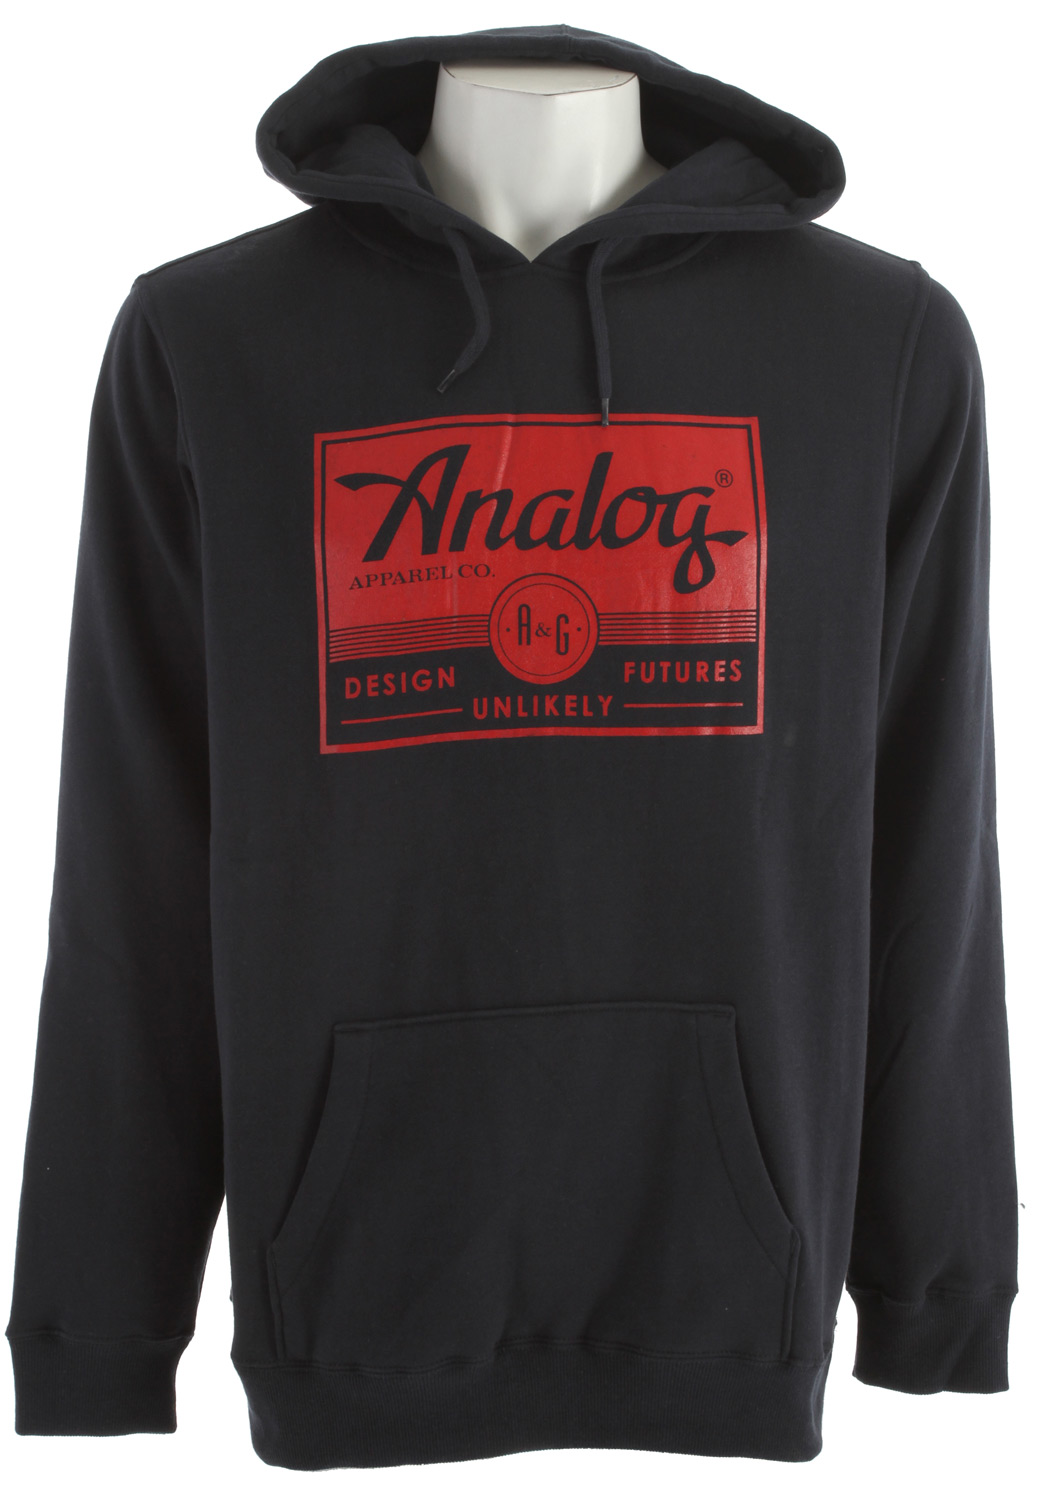 Guns and Military Key Features of the Analog A And G Registered Hoodie Regular fit basic pullover sweatshirt with a chest print 300gm 60% cotton/40% polyester - $38.95